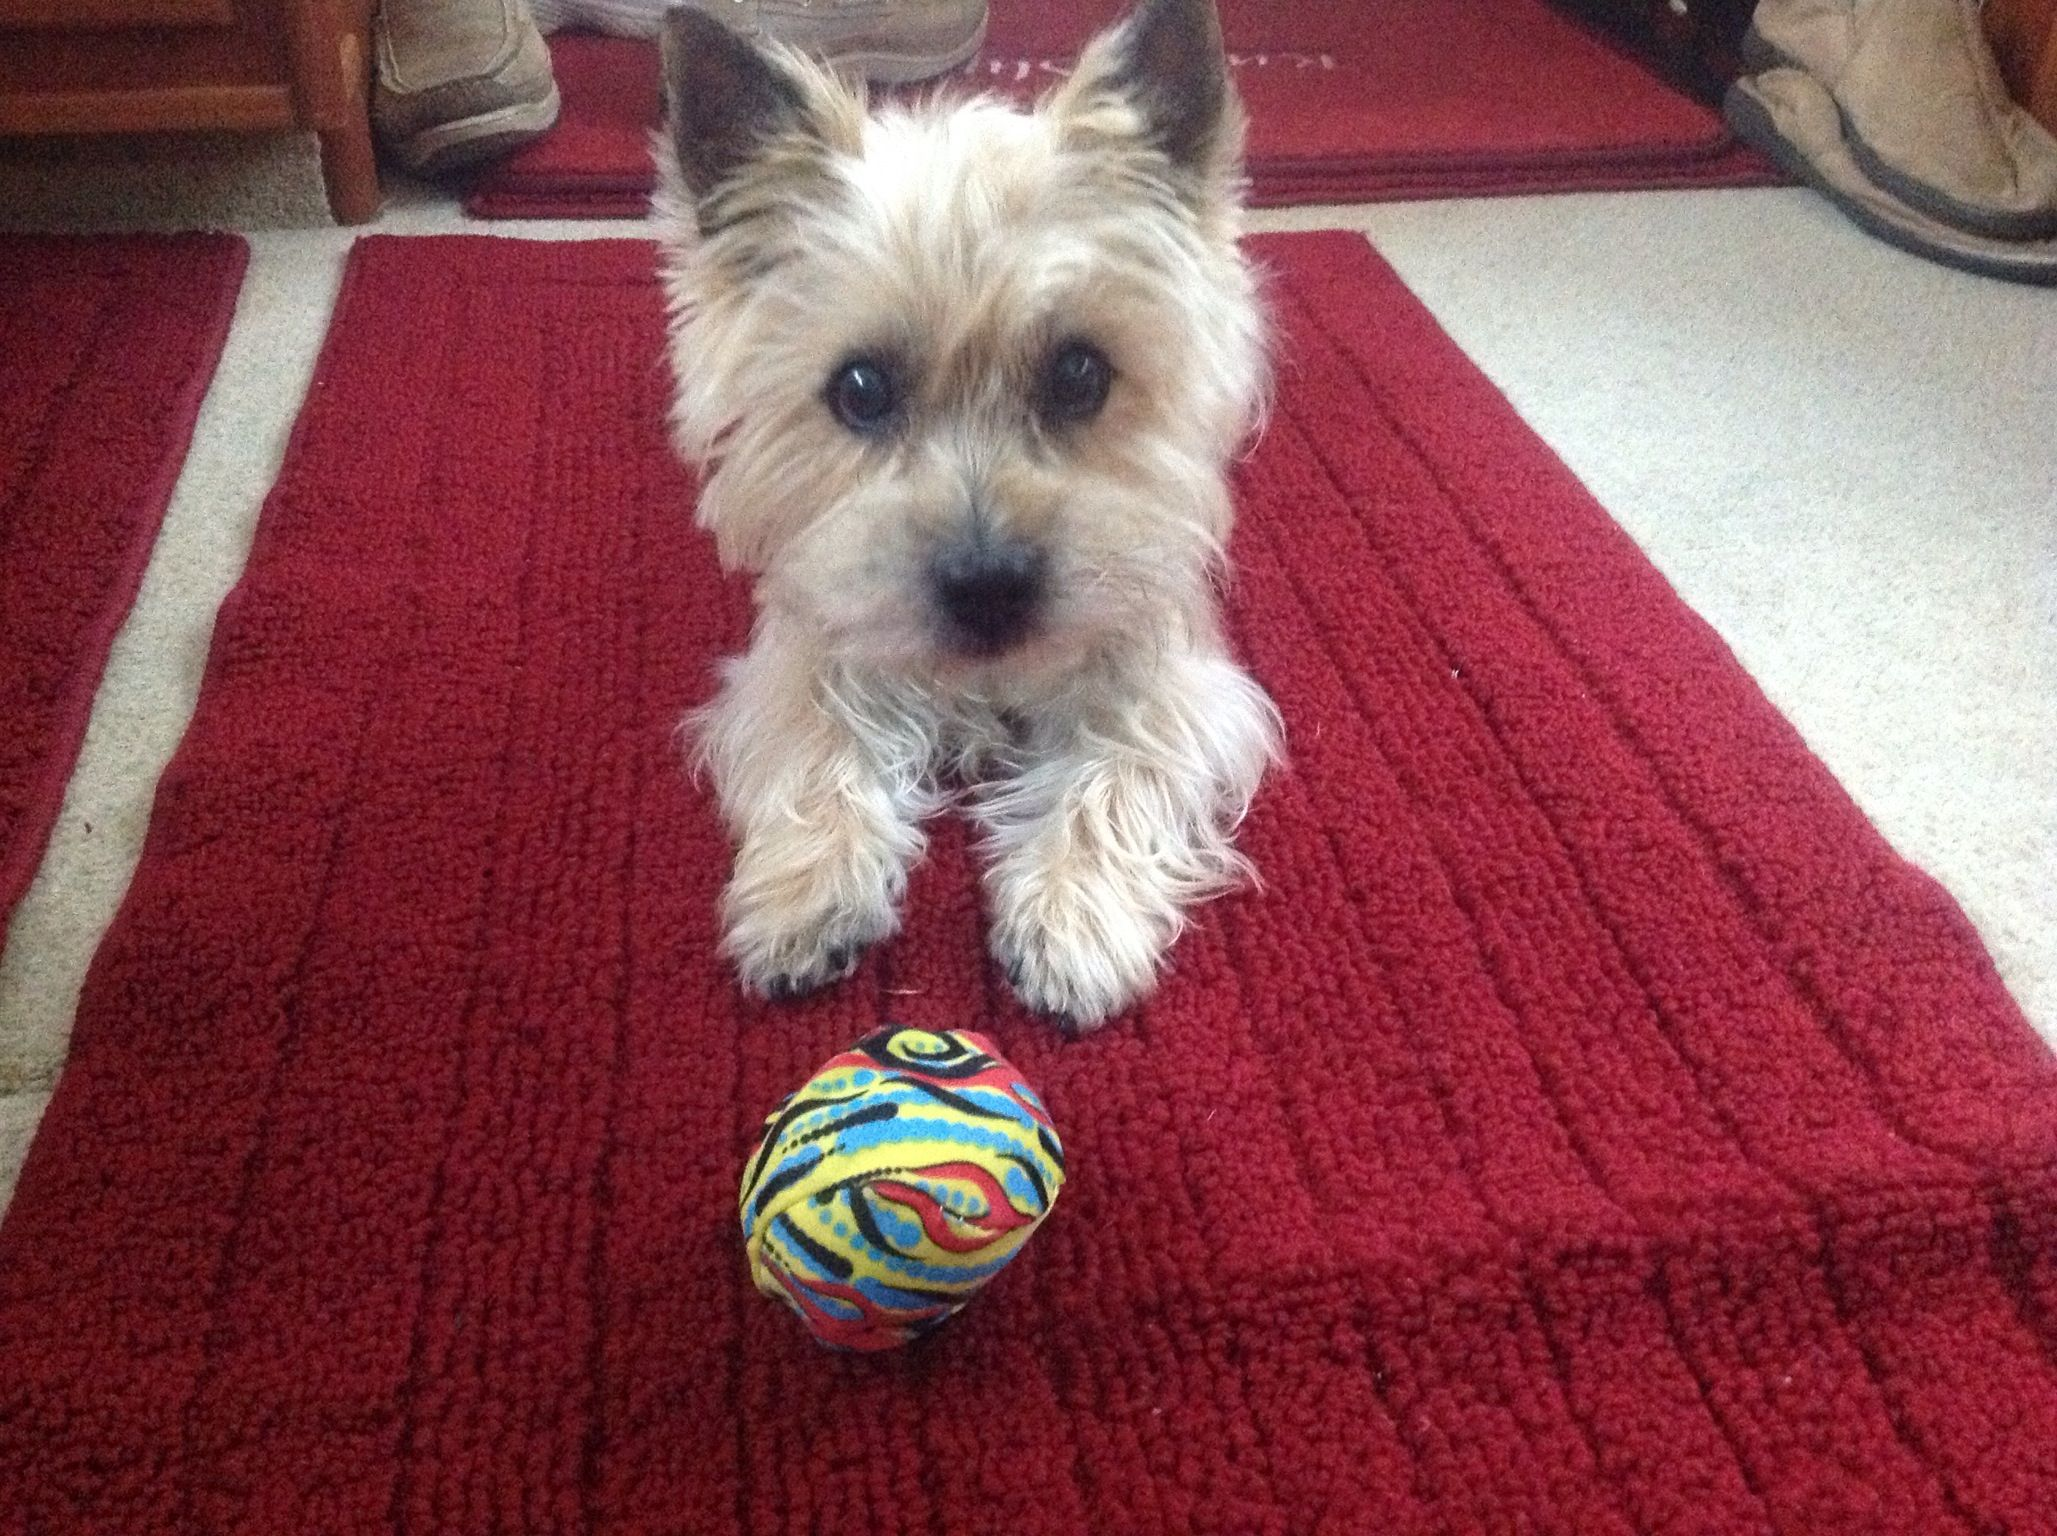 Simple Cairn Terrier Ball Adorable Dog - e0a296c49150a1713064bbfb394b91fd  Graphic_383466  .jpg